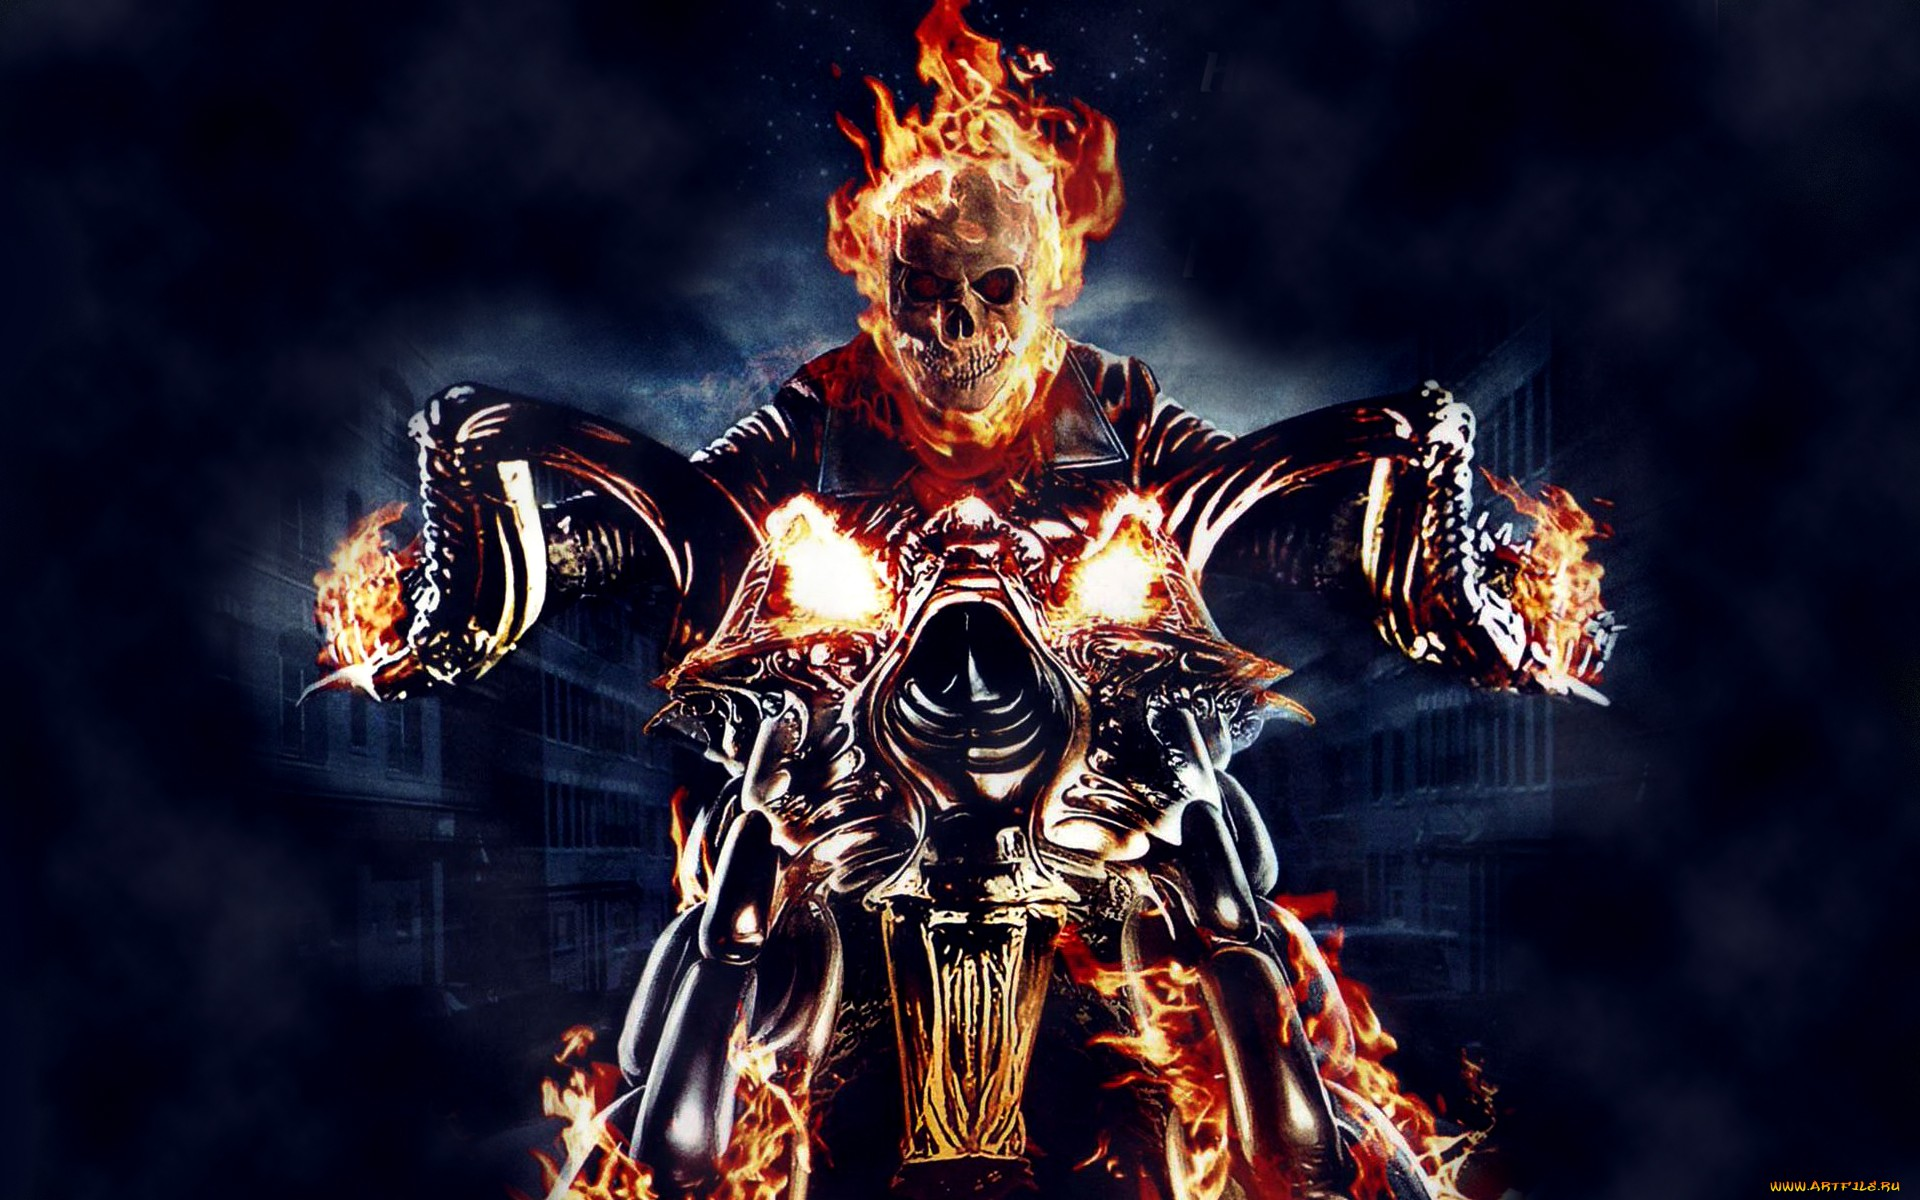 ghost rider wallpaper hd 7 ghost rider wallpaper hd 4 ...